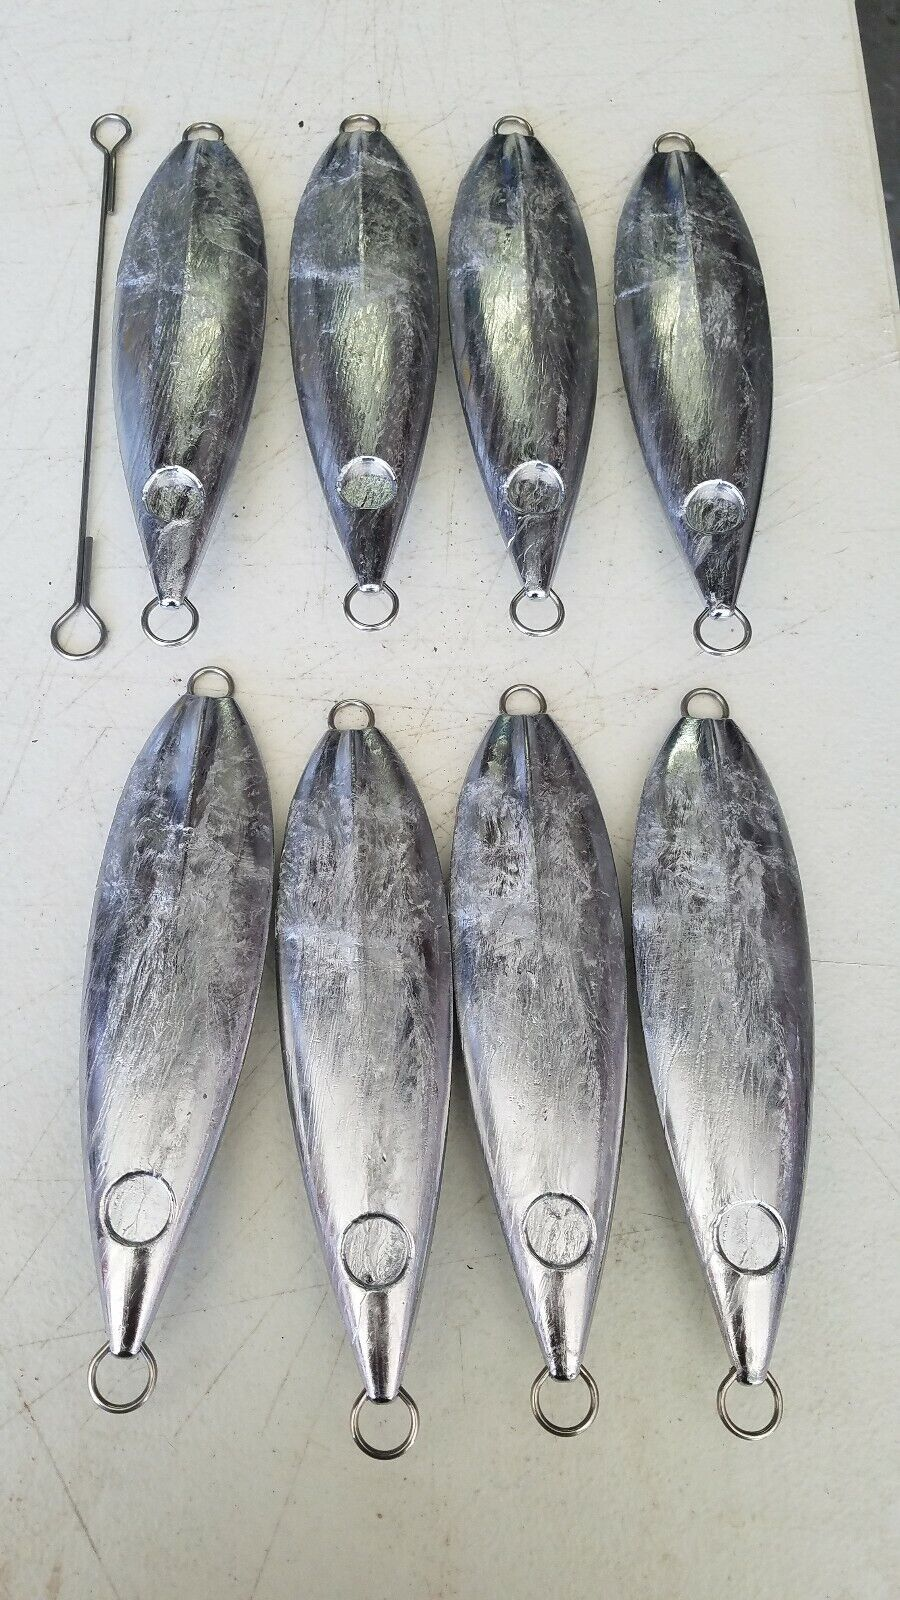 500 gram flat fall slow pitch jigging  blanks 8ct blueefin tuna  various sizes